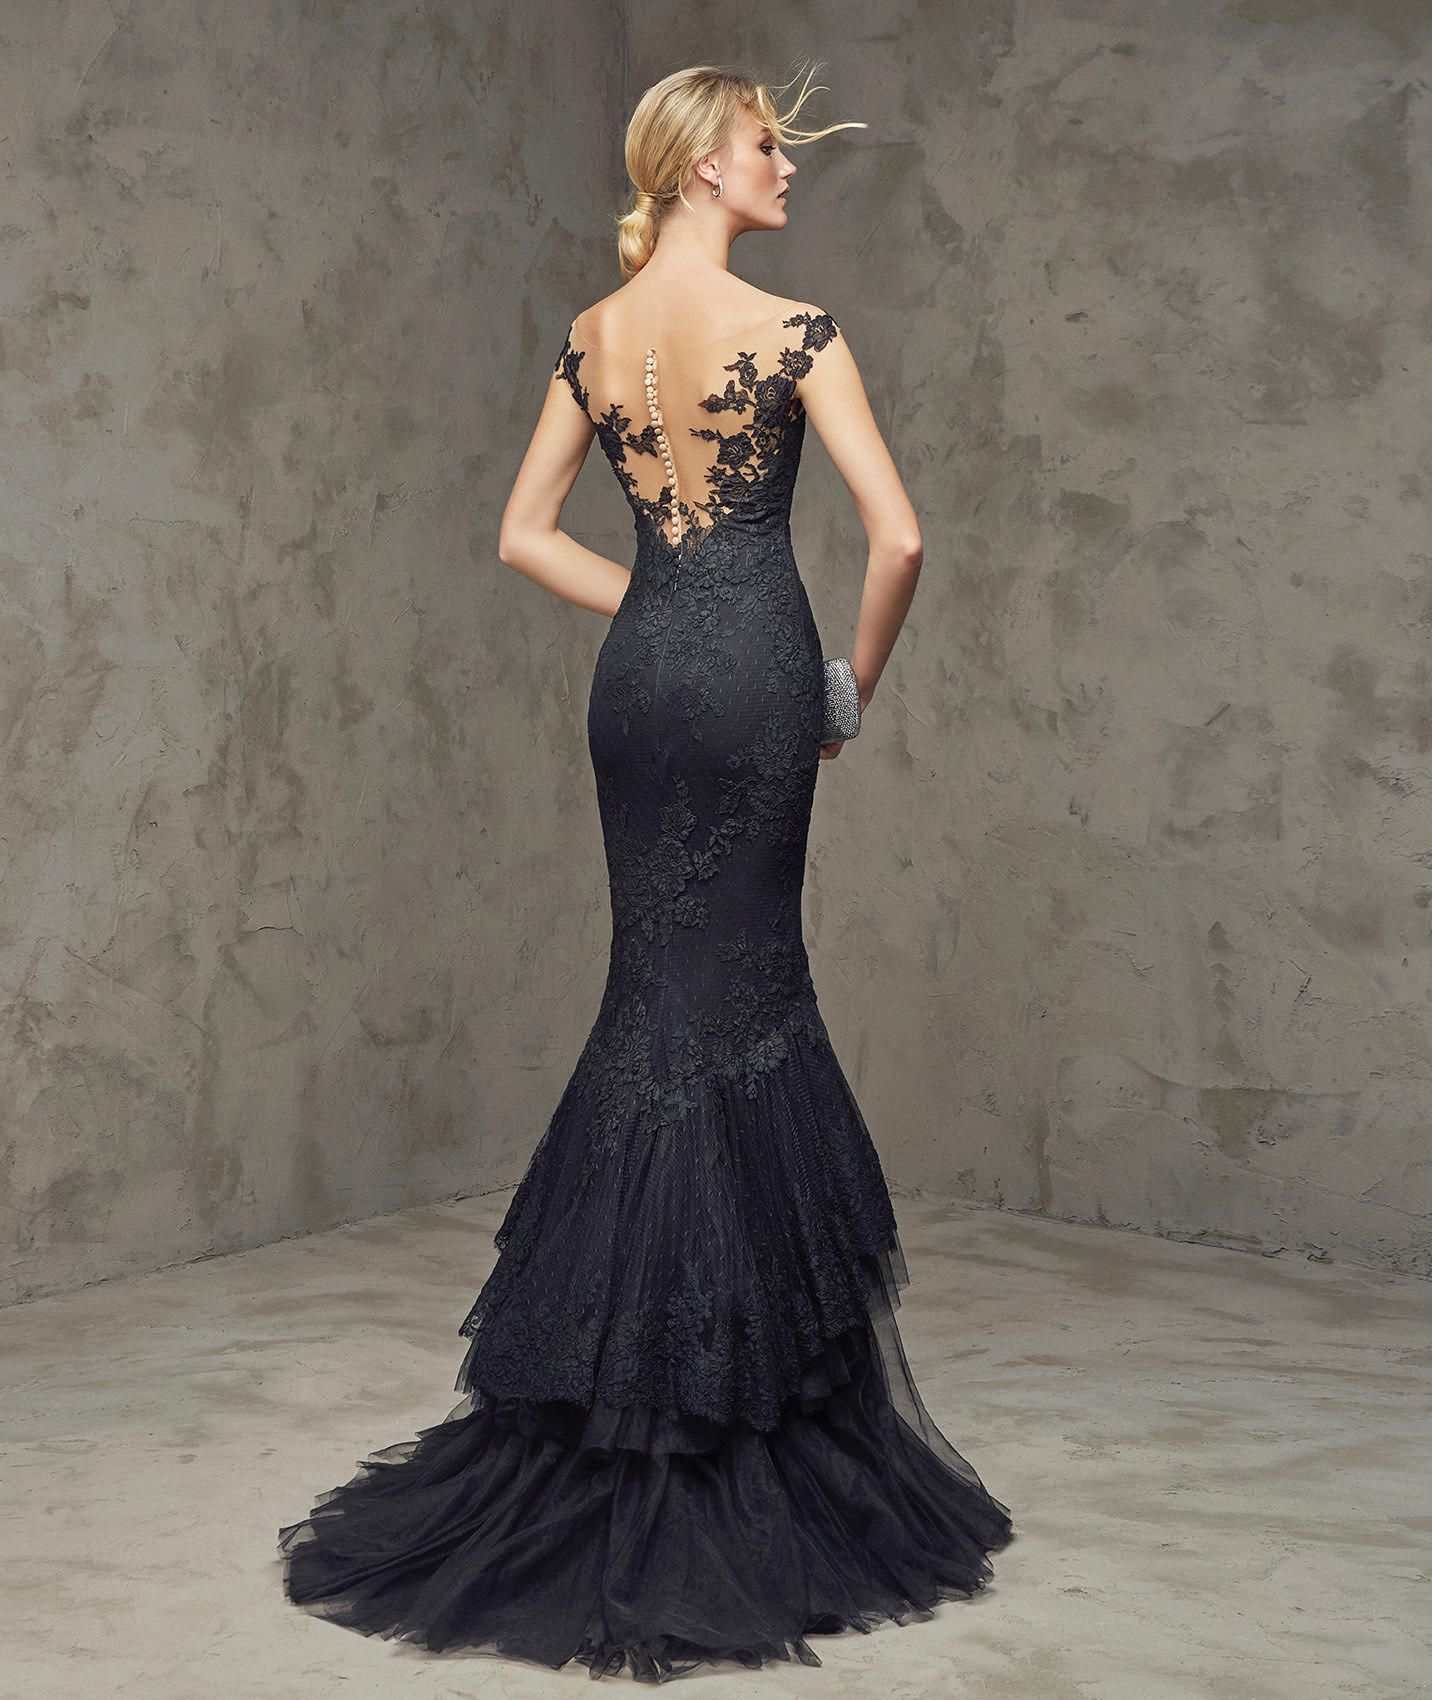 Black dress for wedding party - Fuvial Black Cocktail Dress With Plunging Back Pronovias